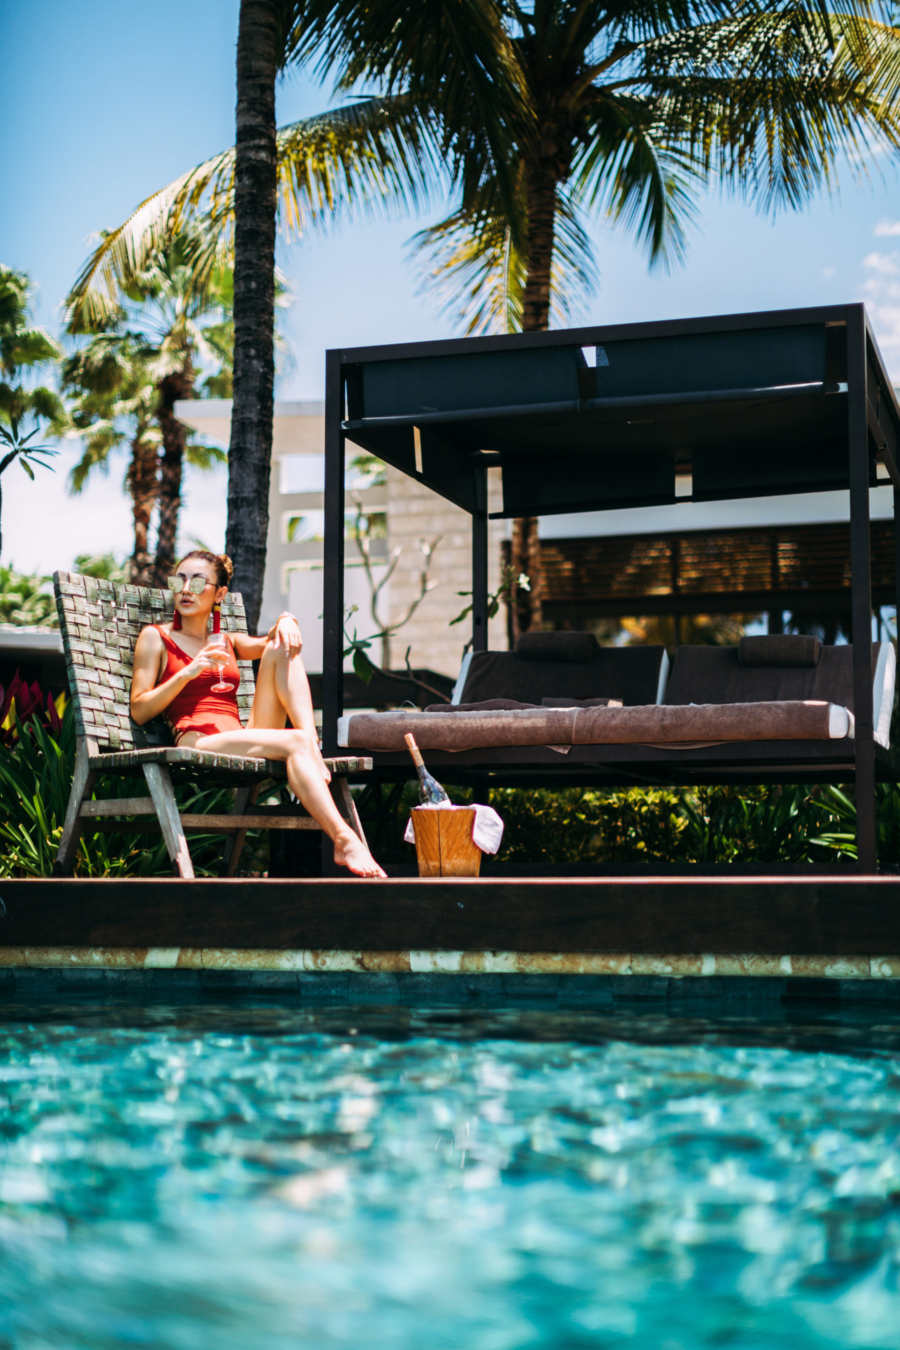 Poolside Hanging - Discover Puerto Rico's Best Kept Secret // NotJessFashion.com